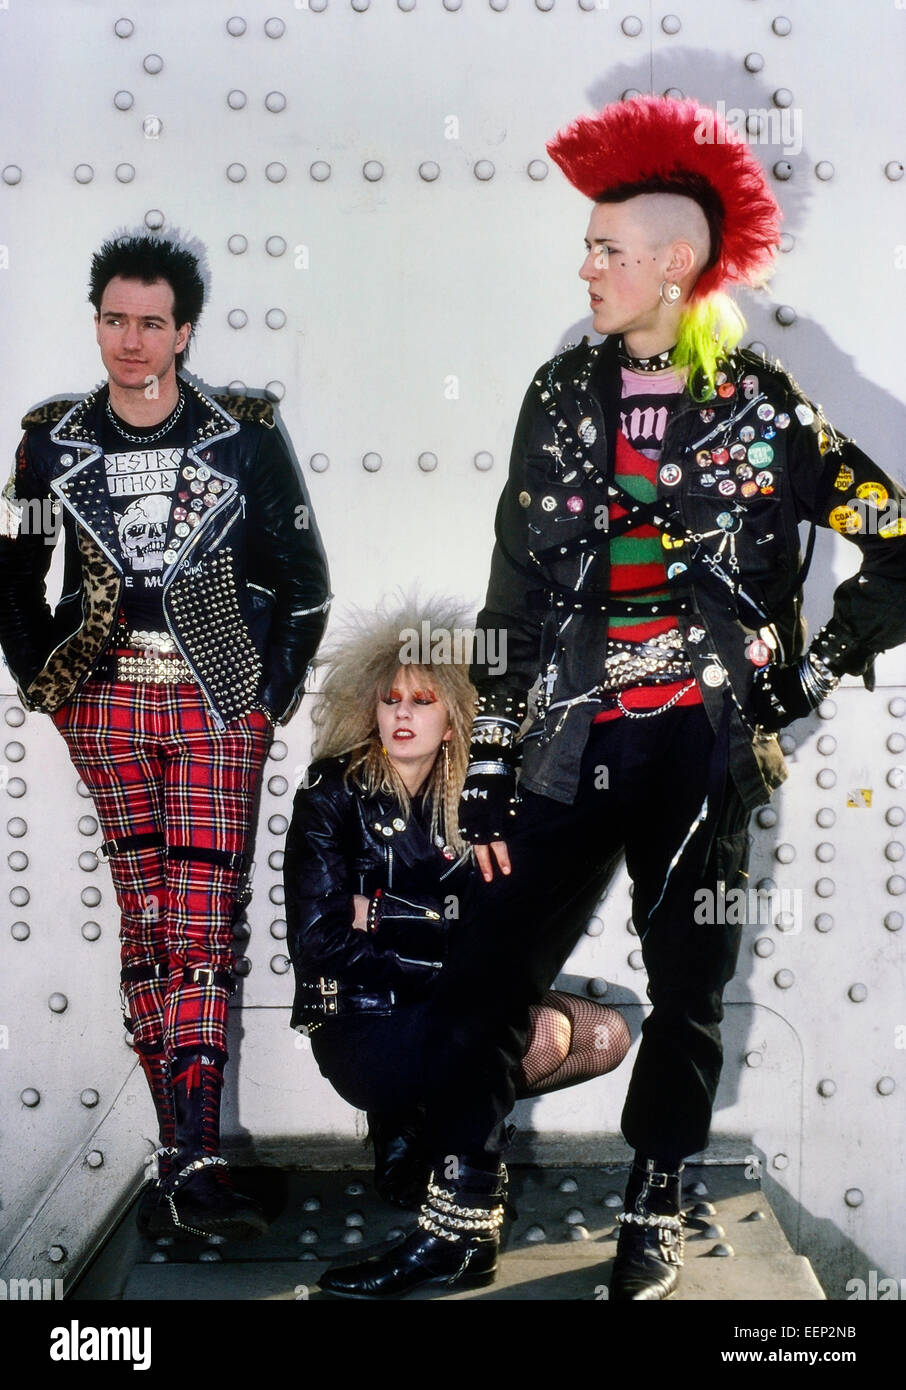 A small group of punk rockers, circa 1980's Stock Photo ...